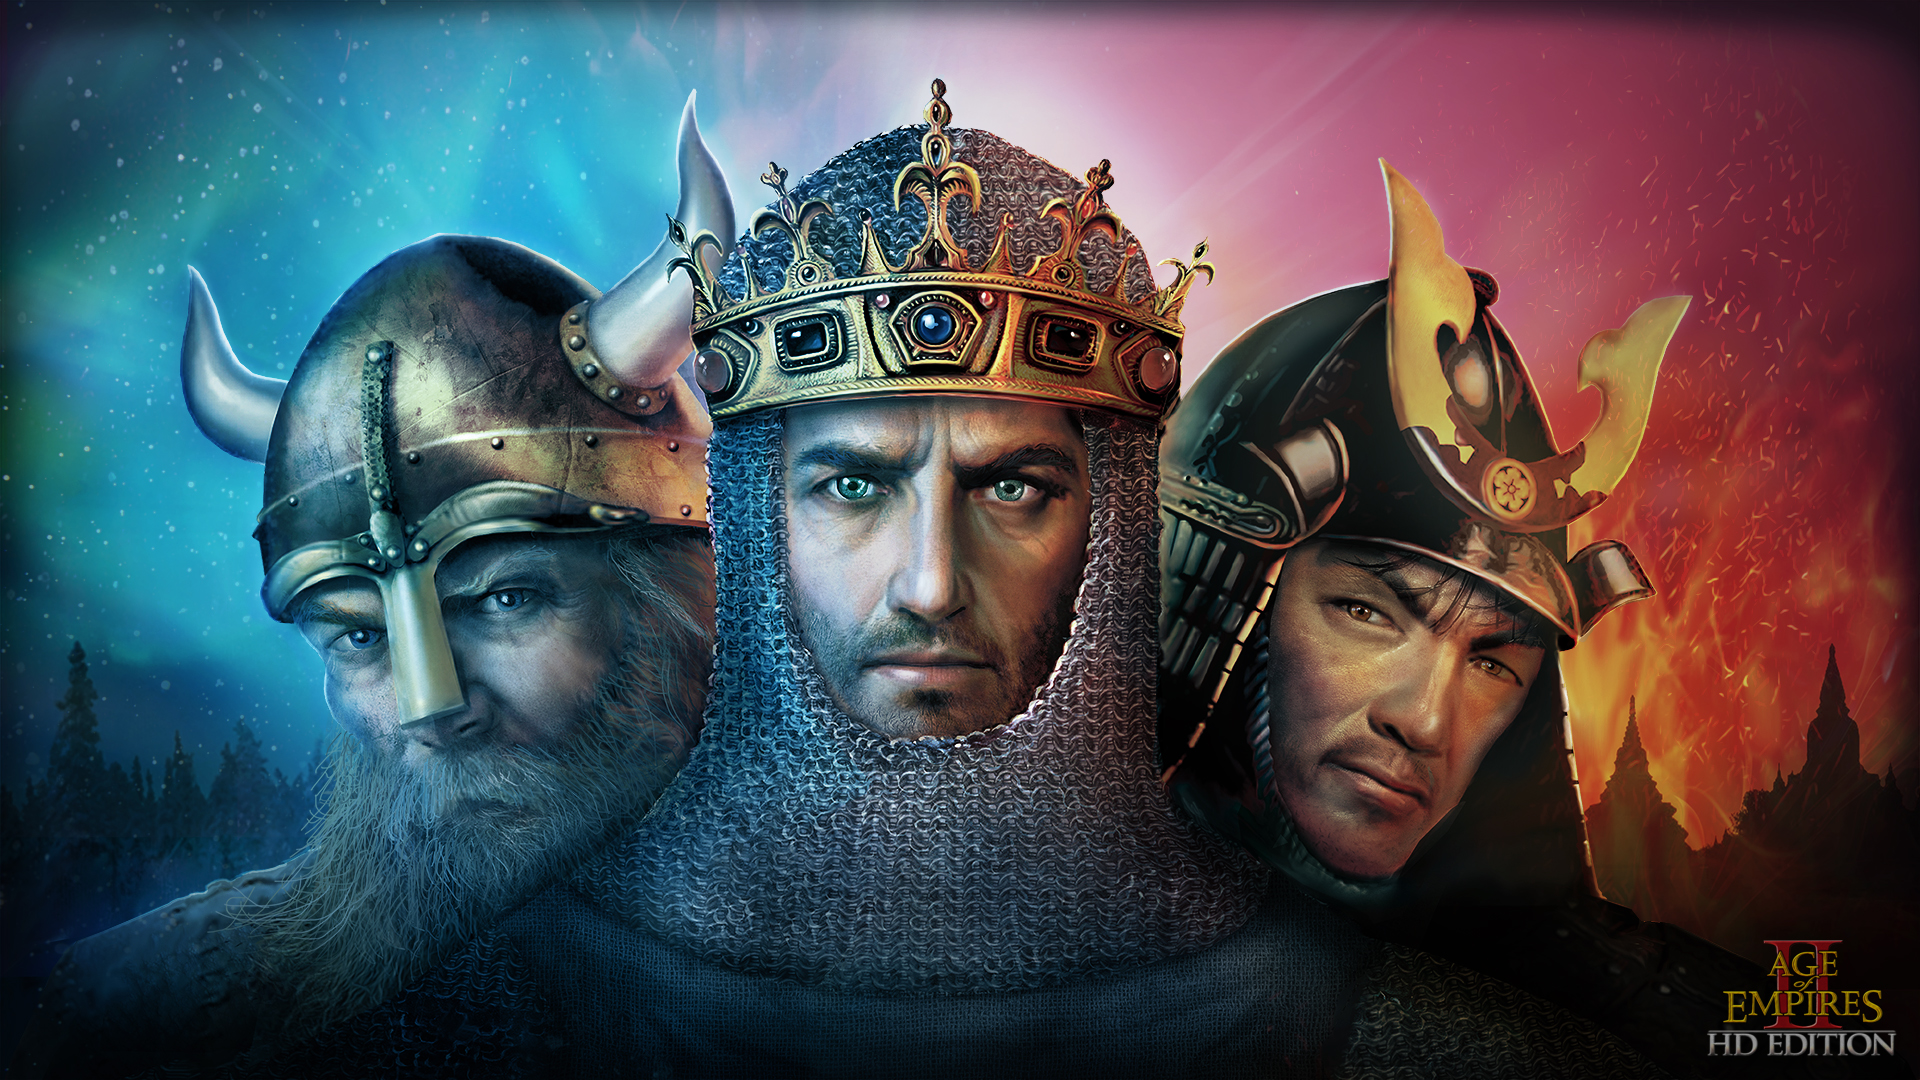 age of empires 2 hd edition download